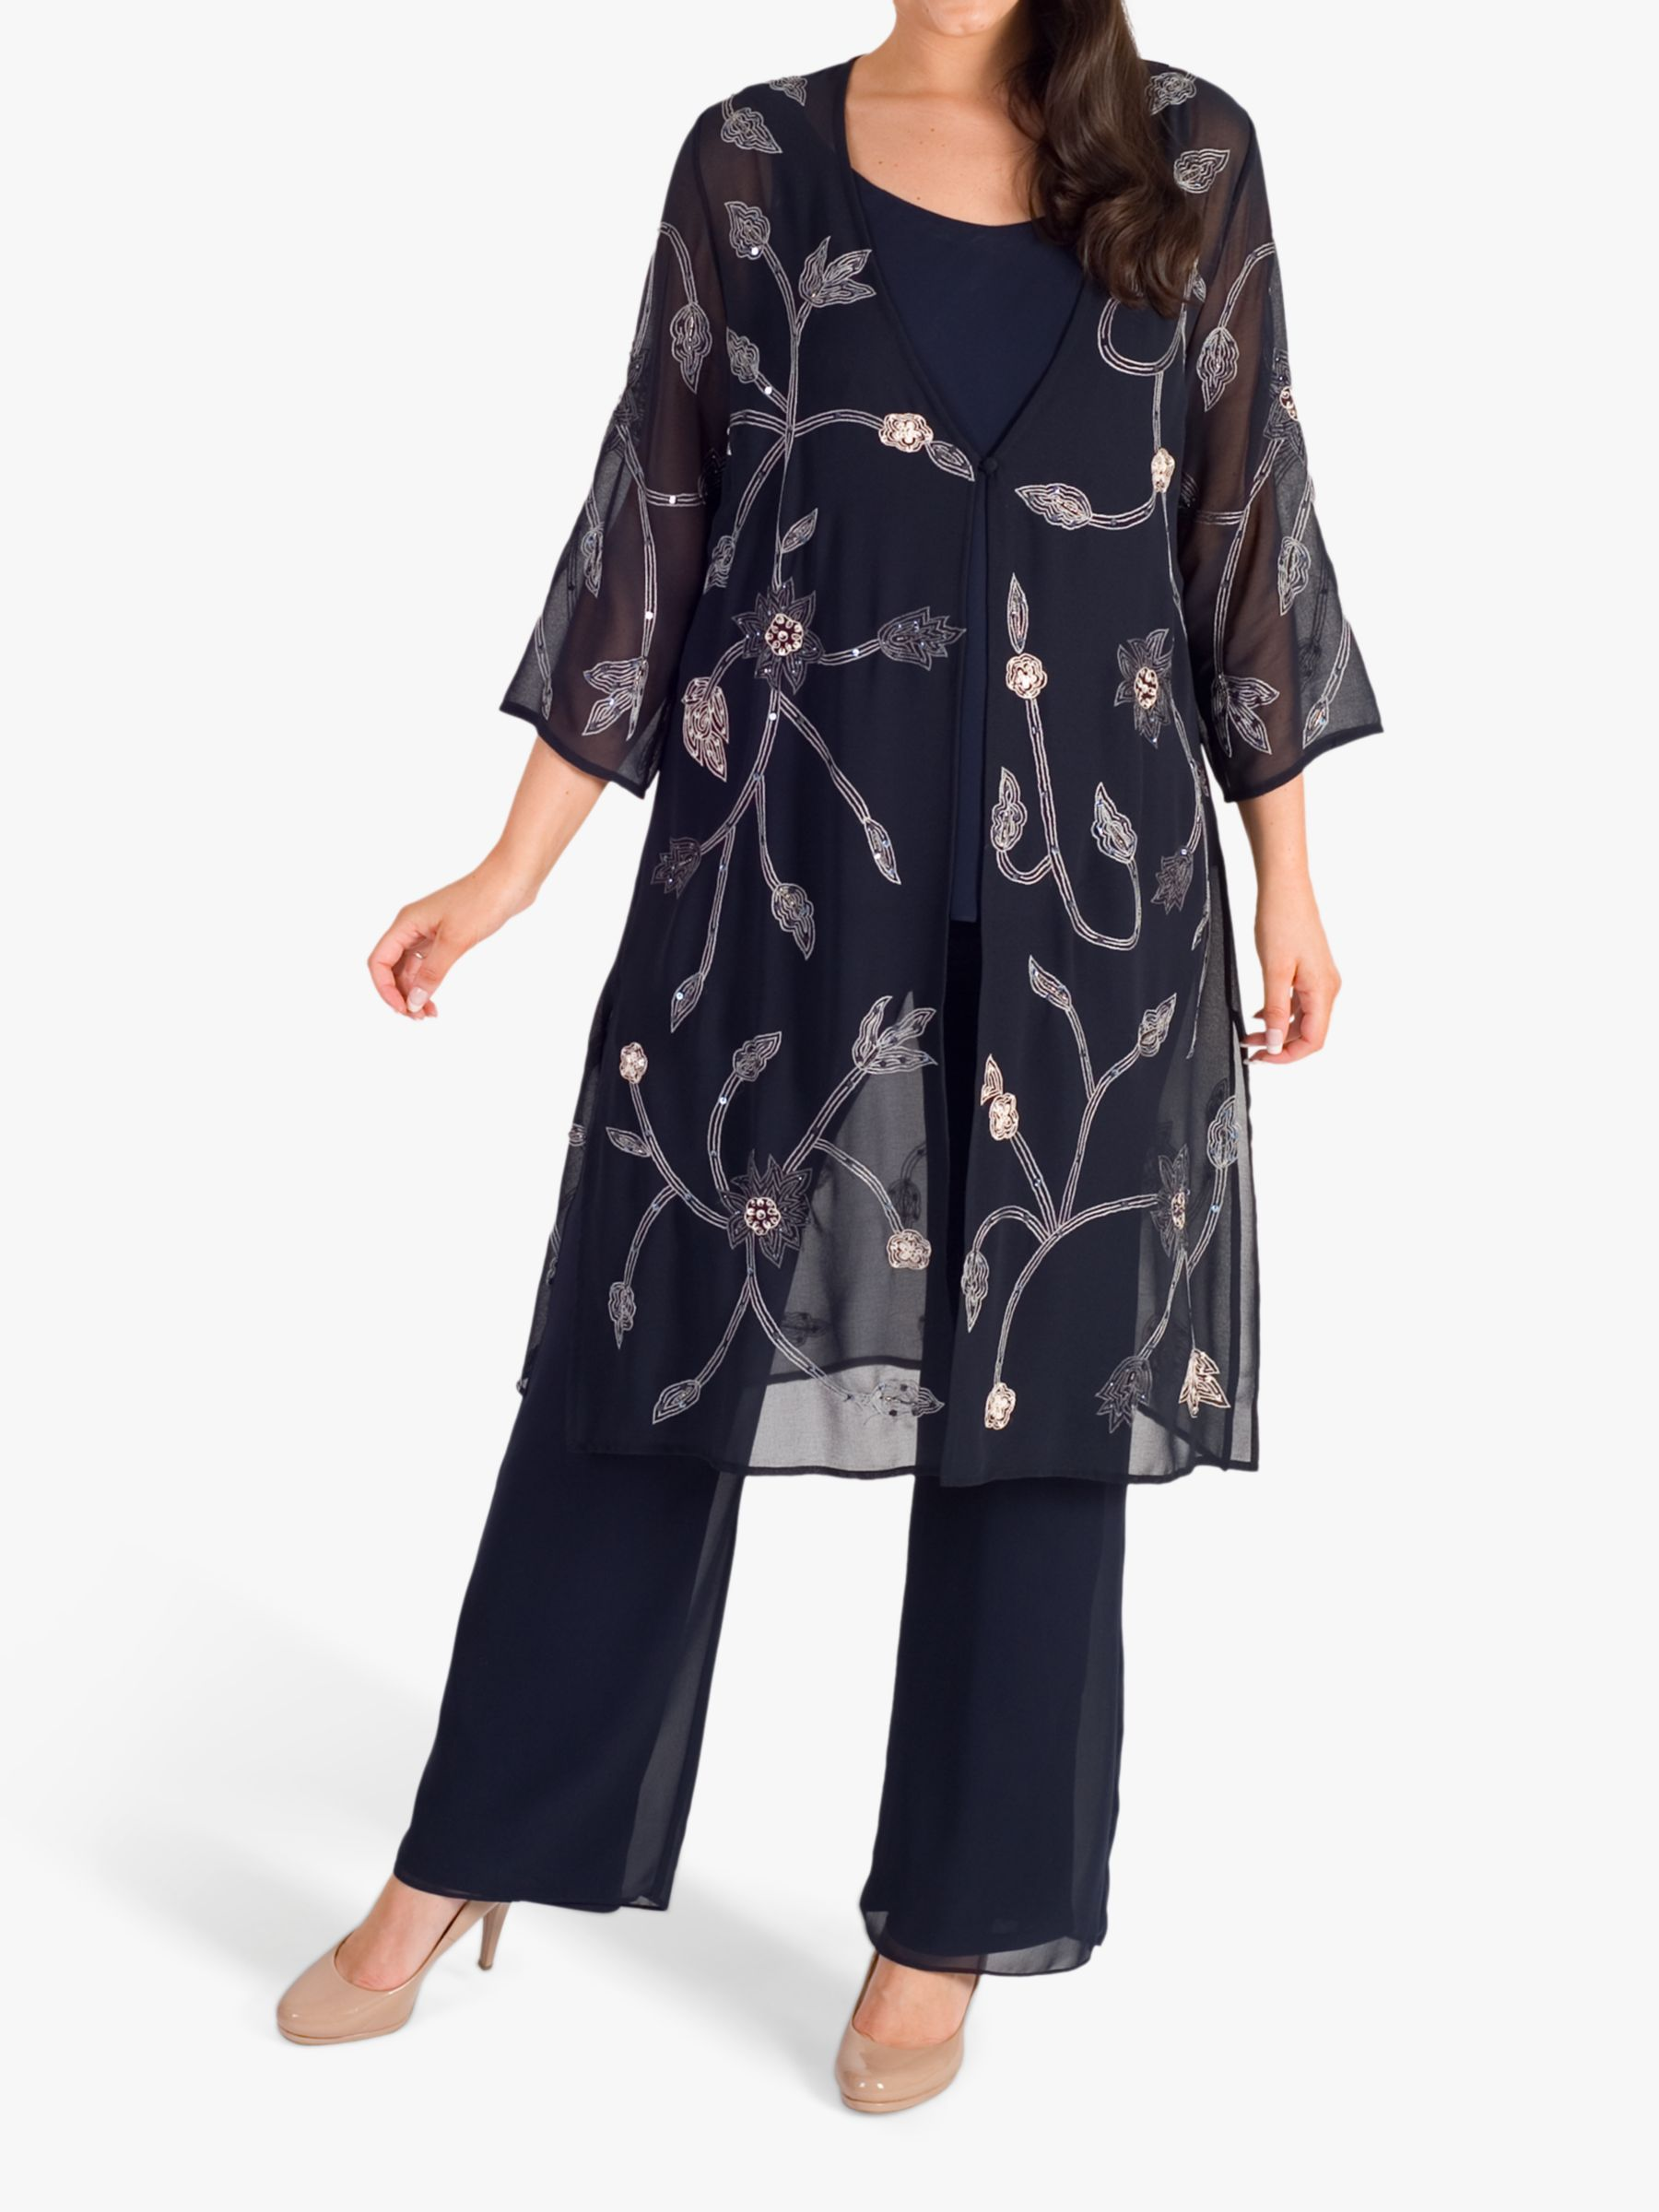 Chesca Chesca Embroidered Chiffon Coat, Navy